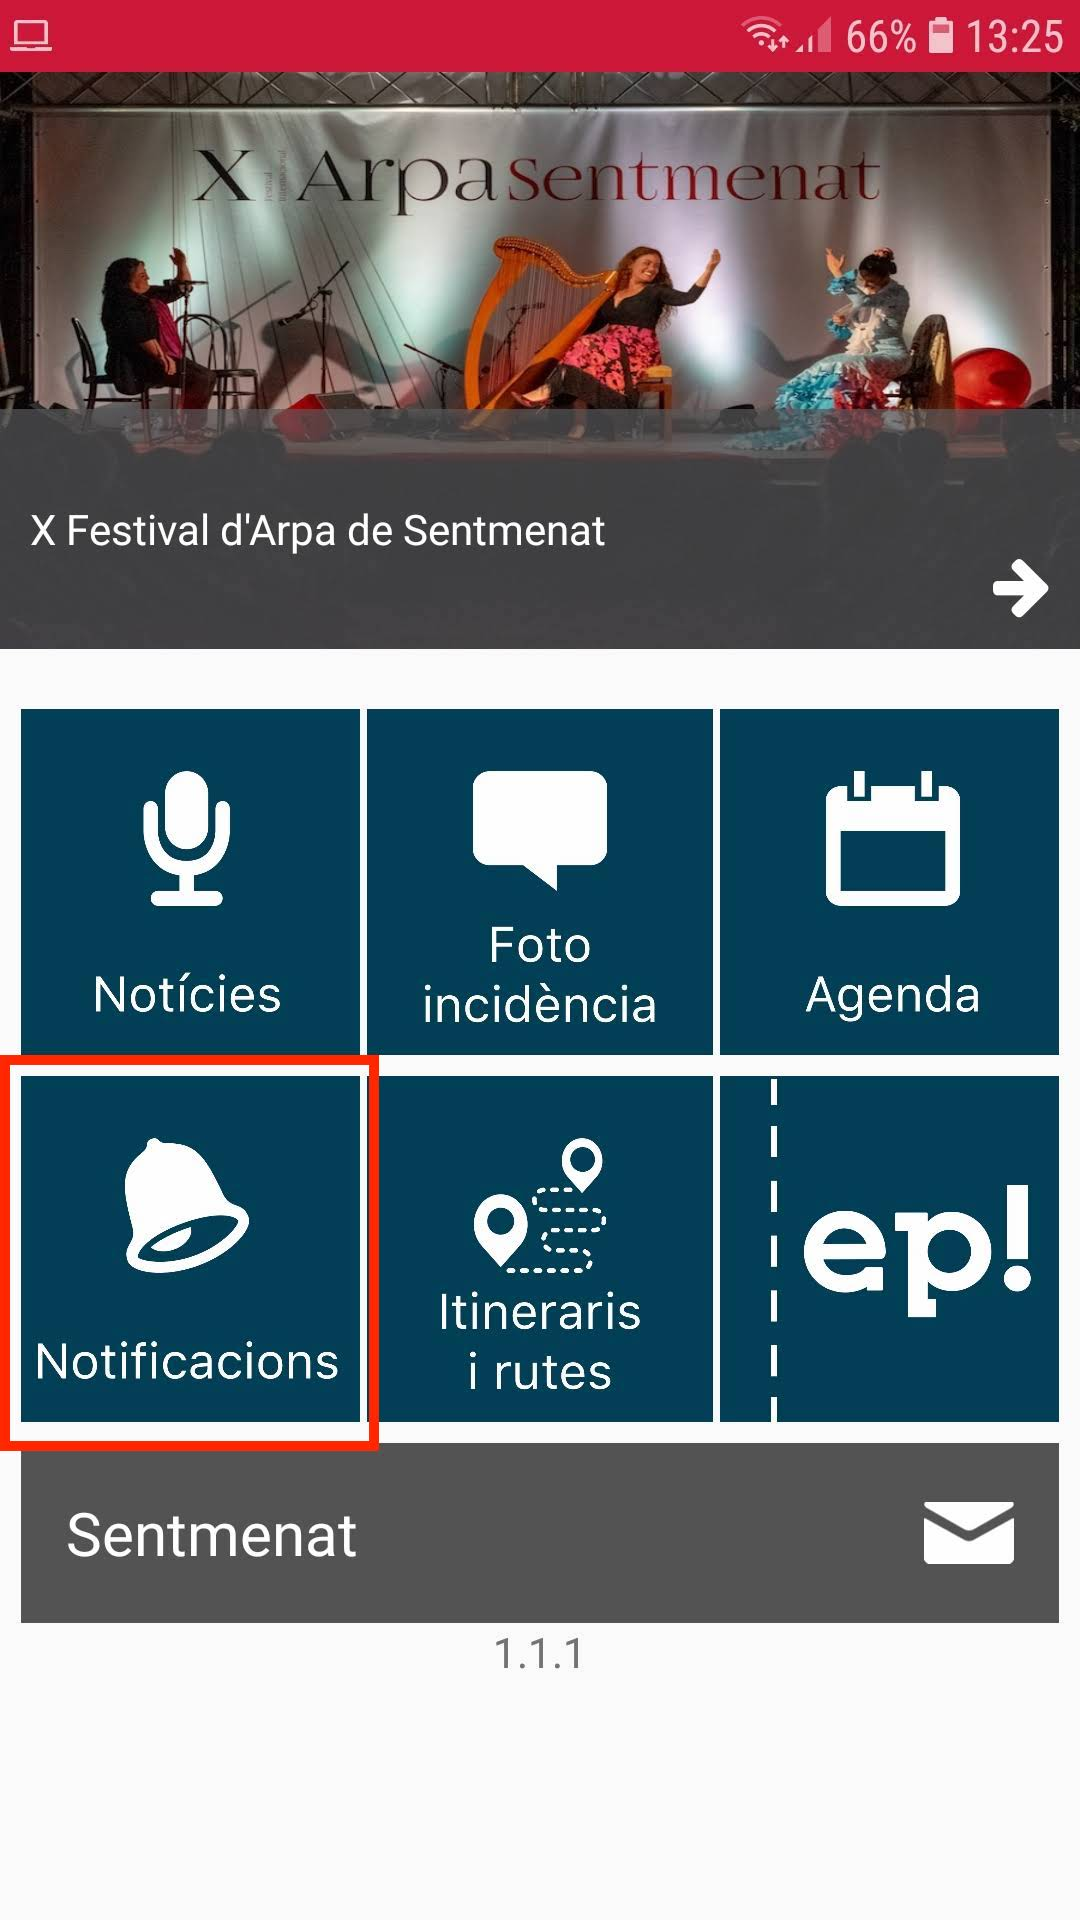 notificacions/avisos appvisador city